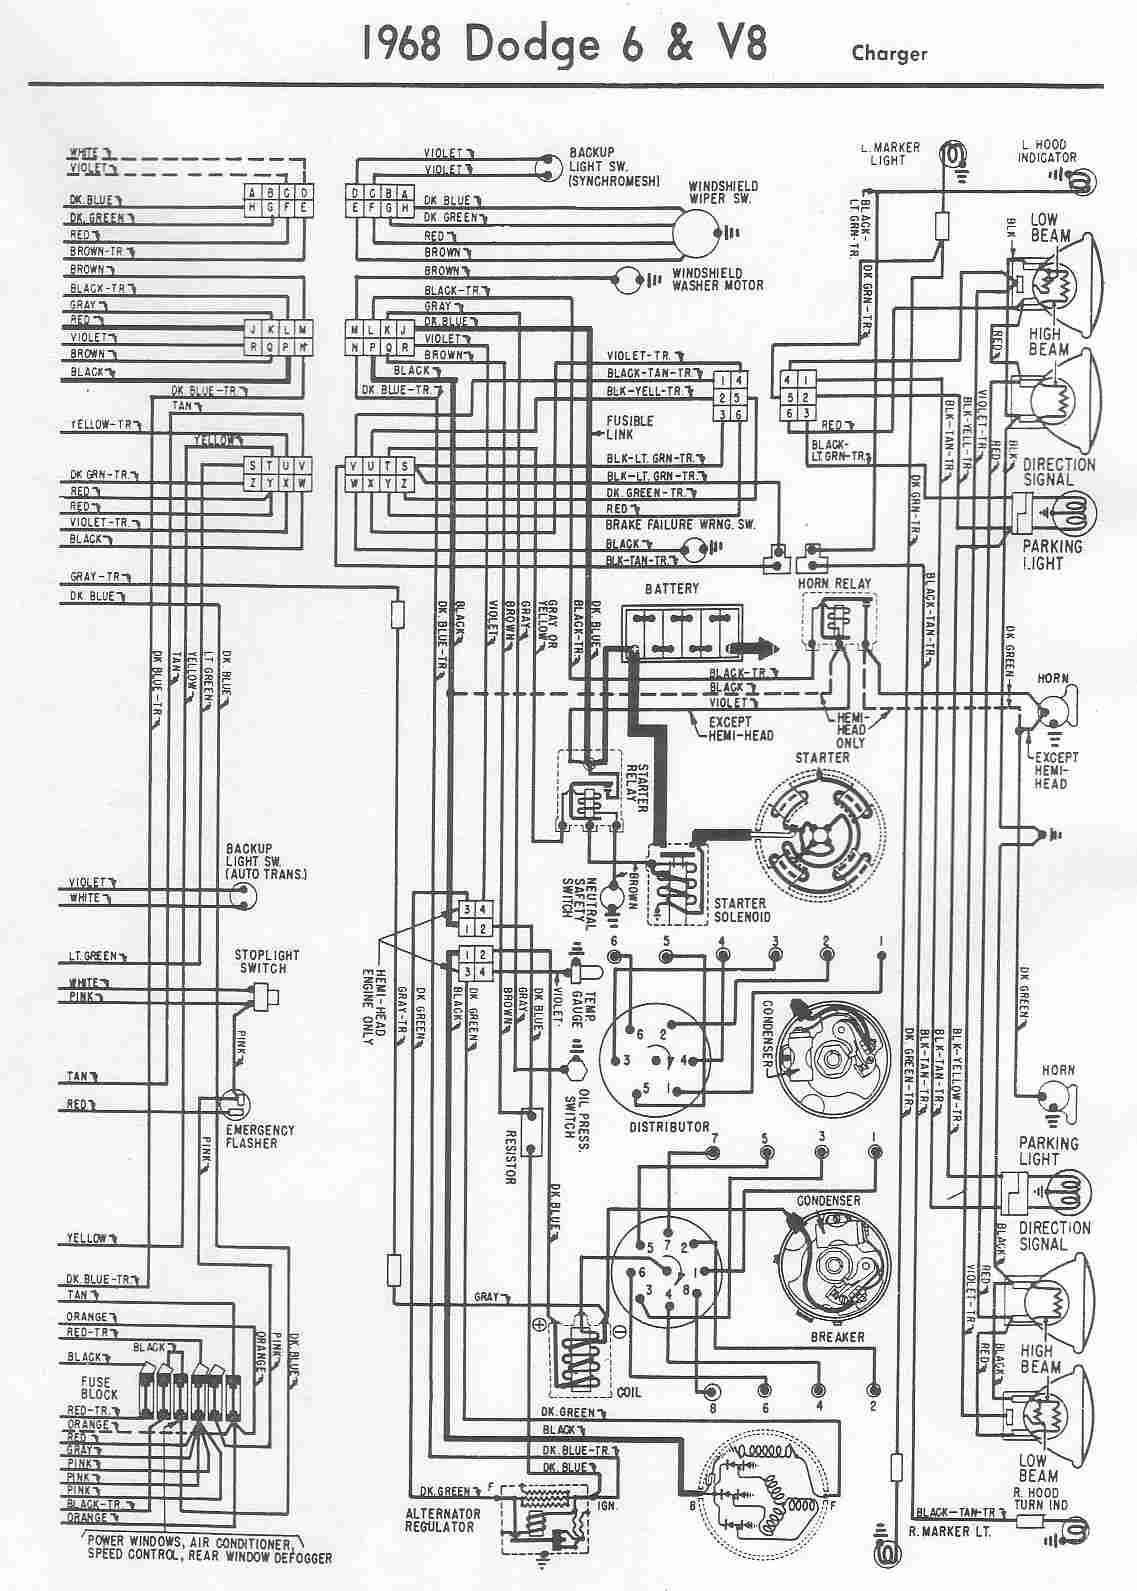 1972 dodge dart dash wiring harness   35 wiring diagram